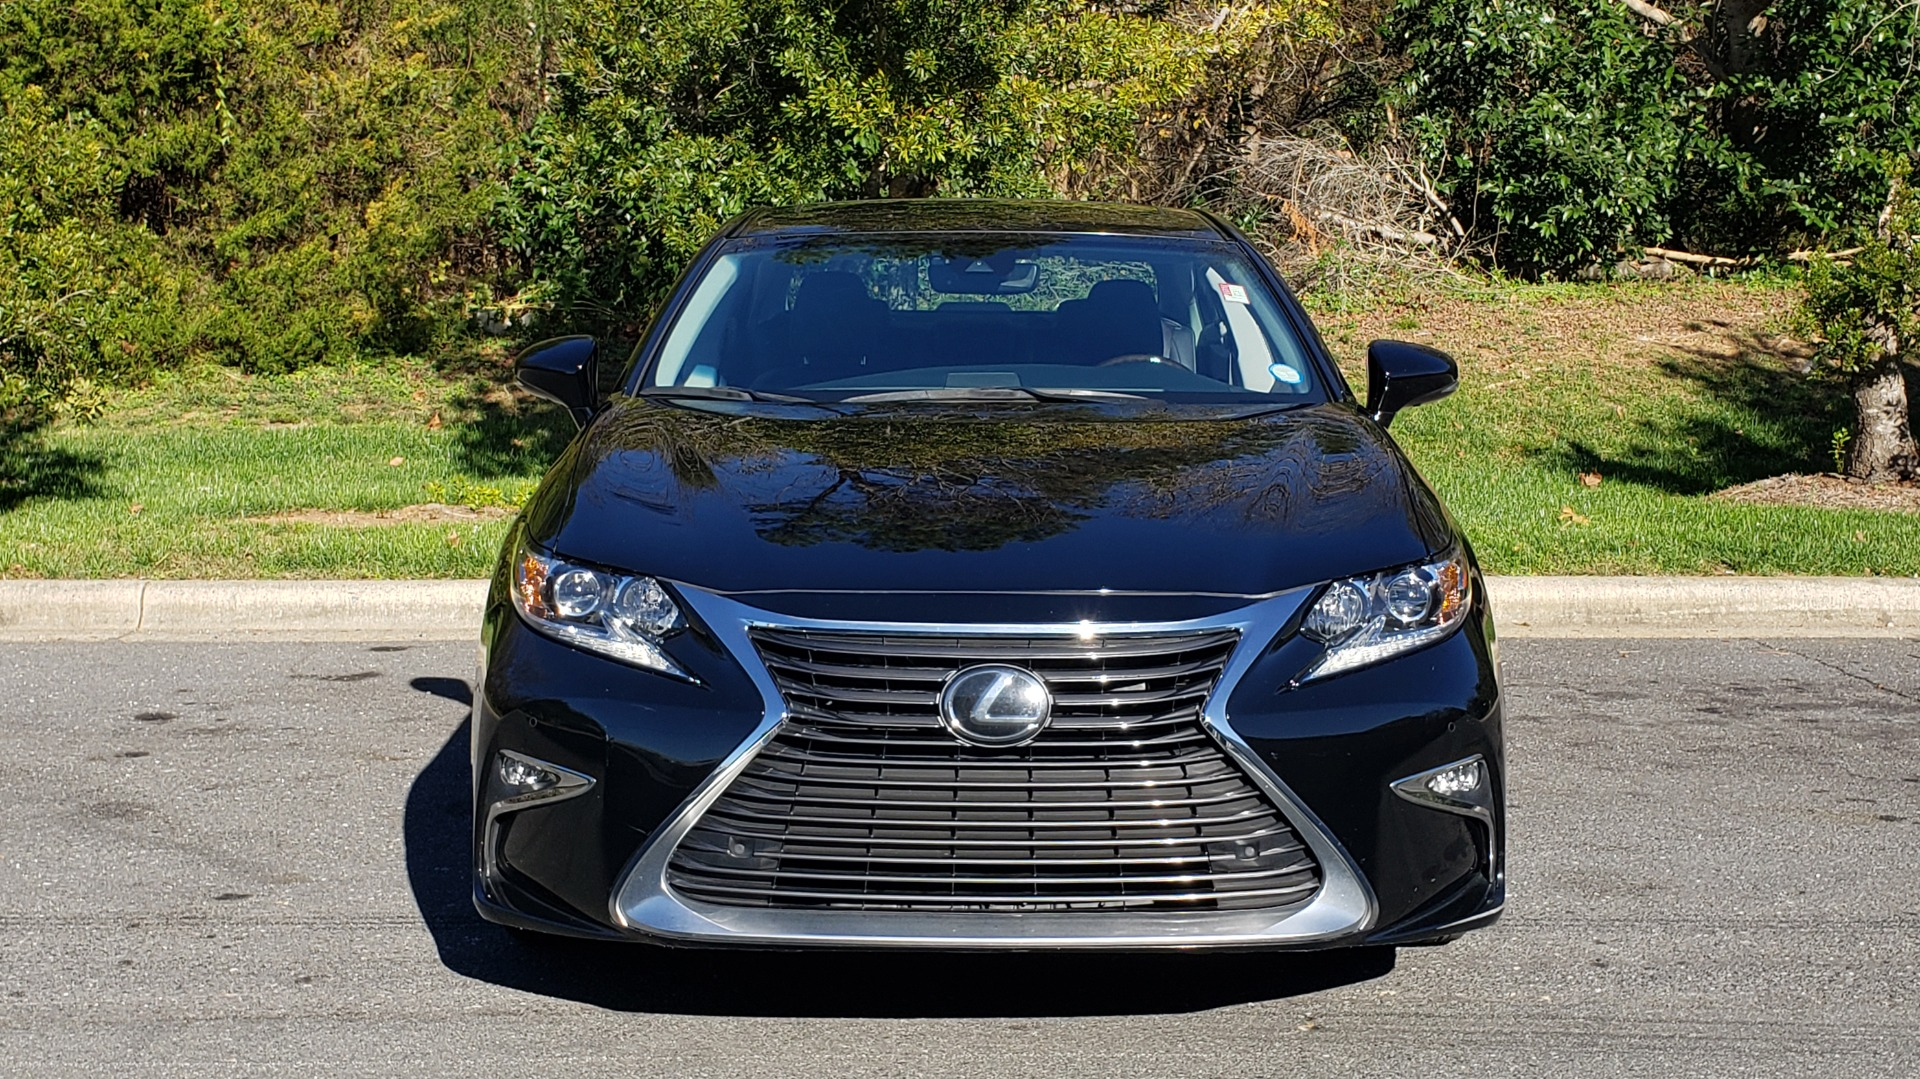 Used 2017 Lexus ES 350 PREMIUM / NAV / SUNROOF / BSM / VENT STS / REARVIEW for sale $24,795 at Formula Imports in Charlotte NC 28227 14